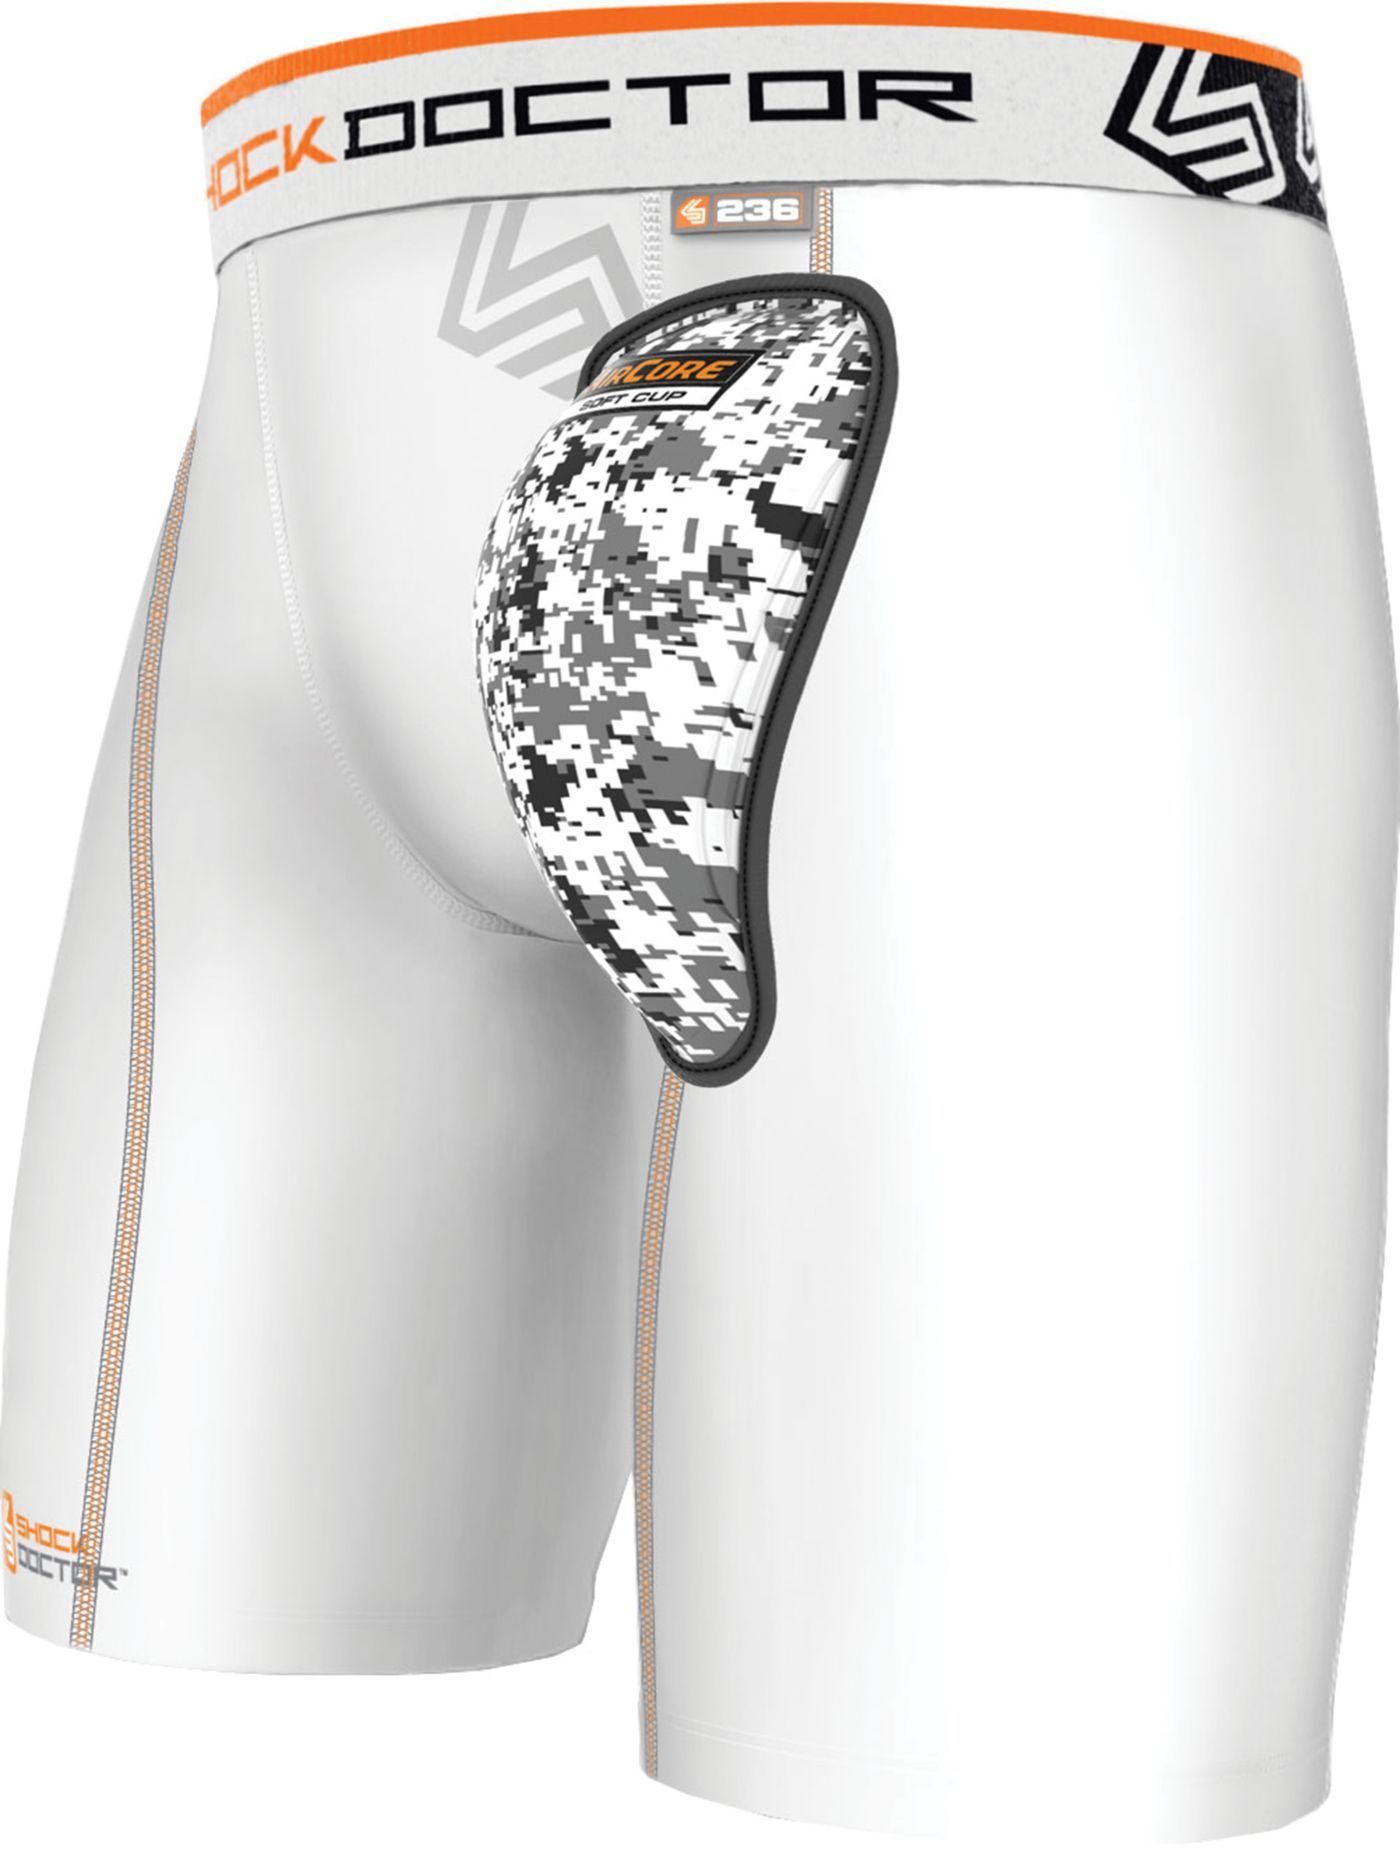 Shock Doctor Adult AirCore Compression Shorts with Soft Cup